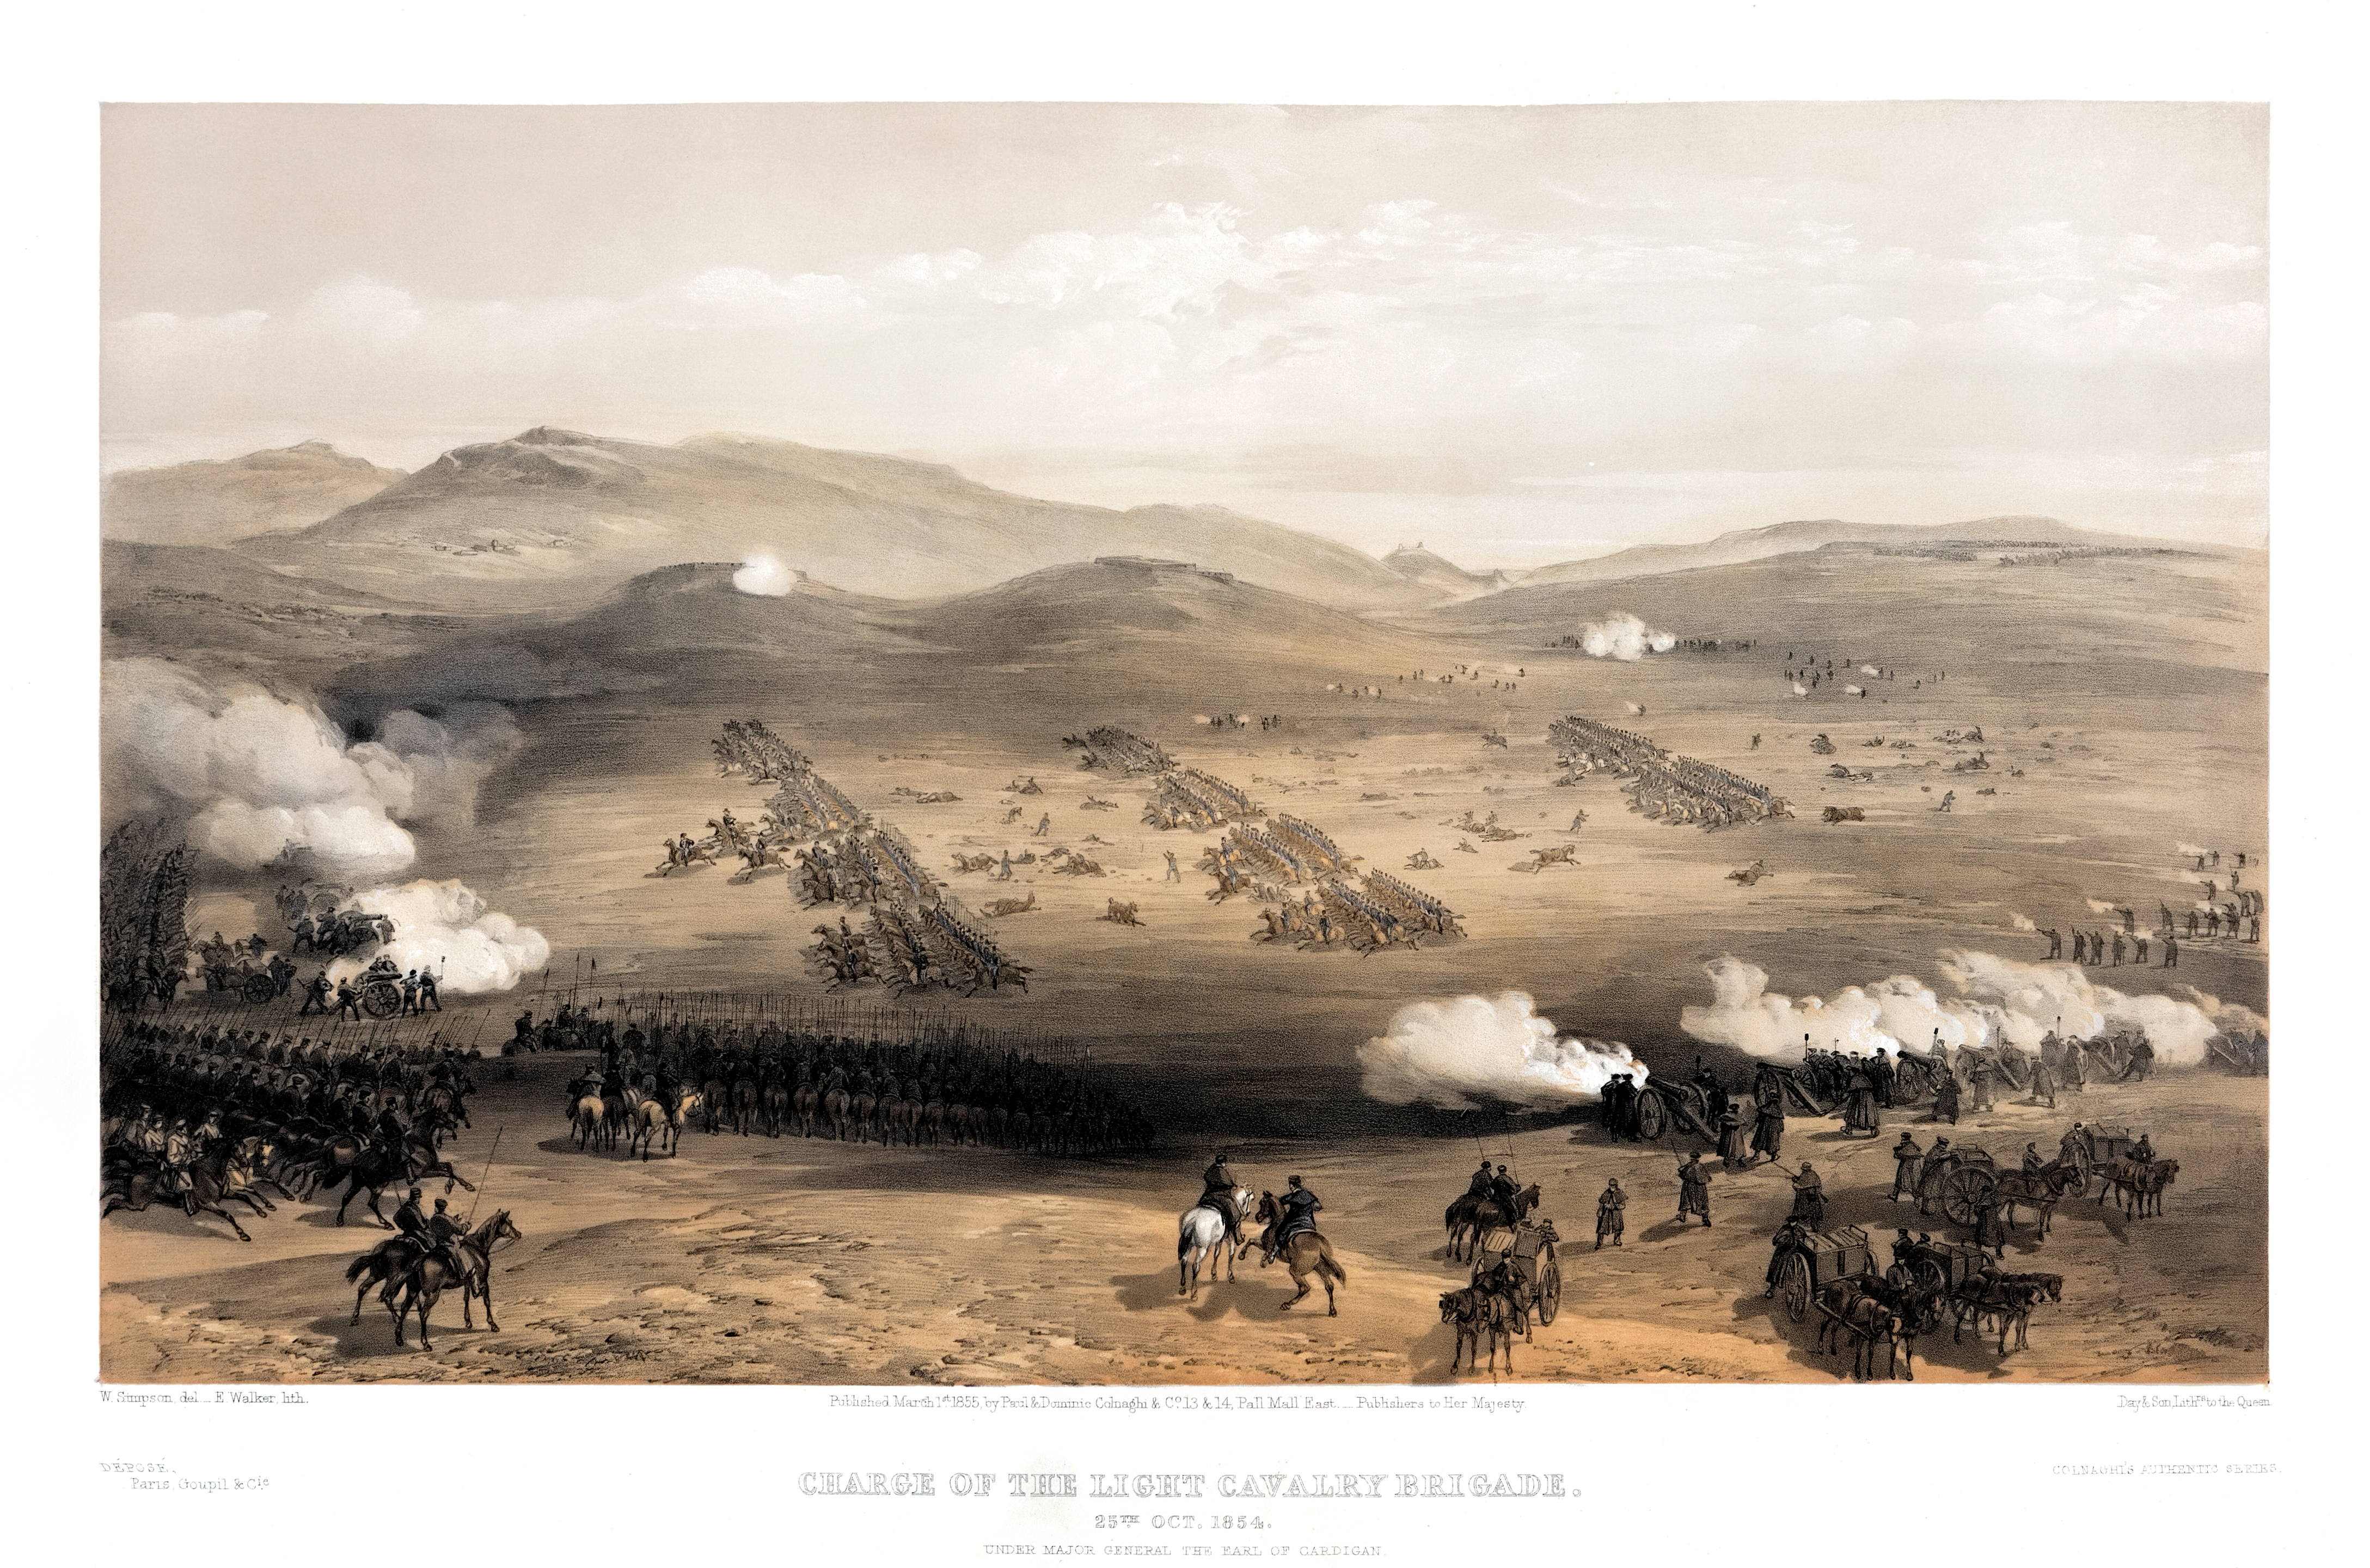 1 1 1 1 1 William_Simpson_-_Charge_of_the_light_cavalry_brigade,_25th_Oct._1854,_under_Major_General_the_Earl_of_Cardigan